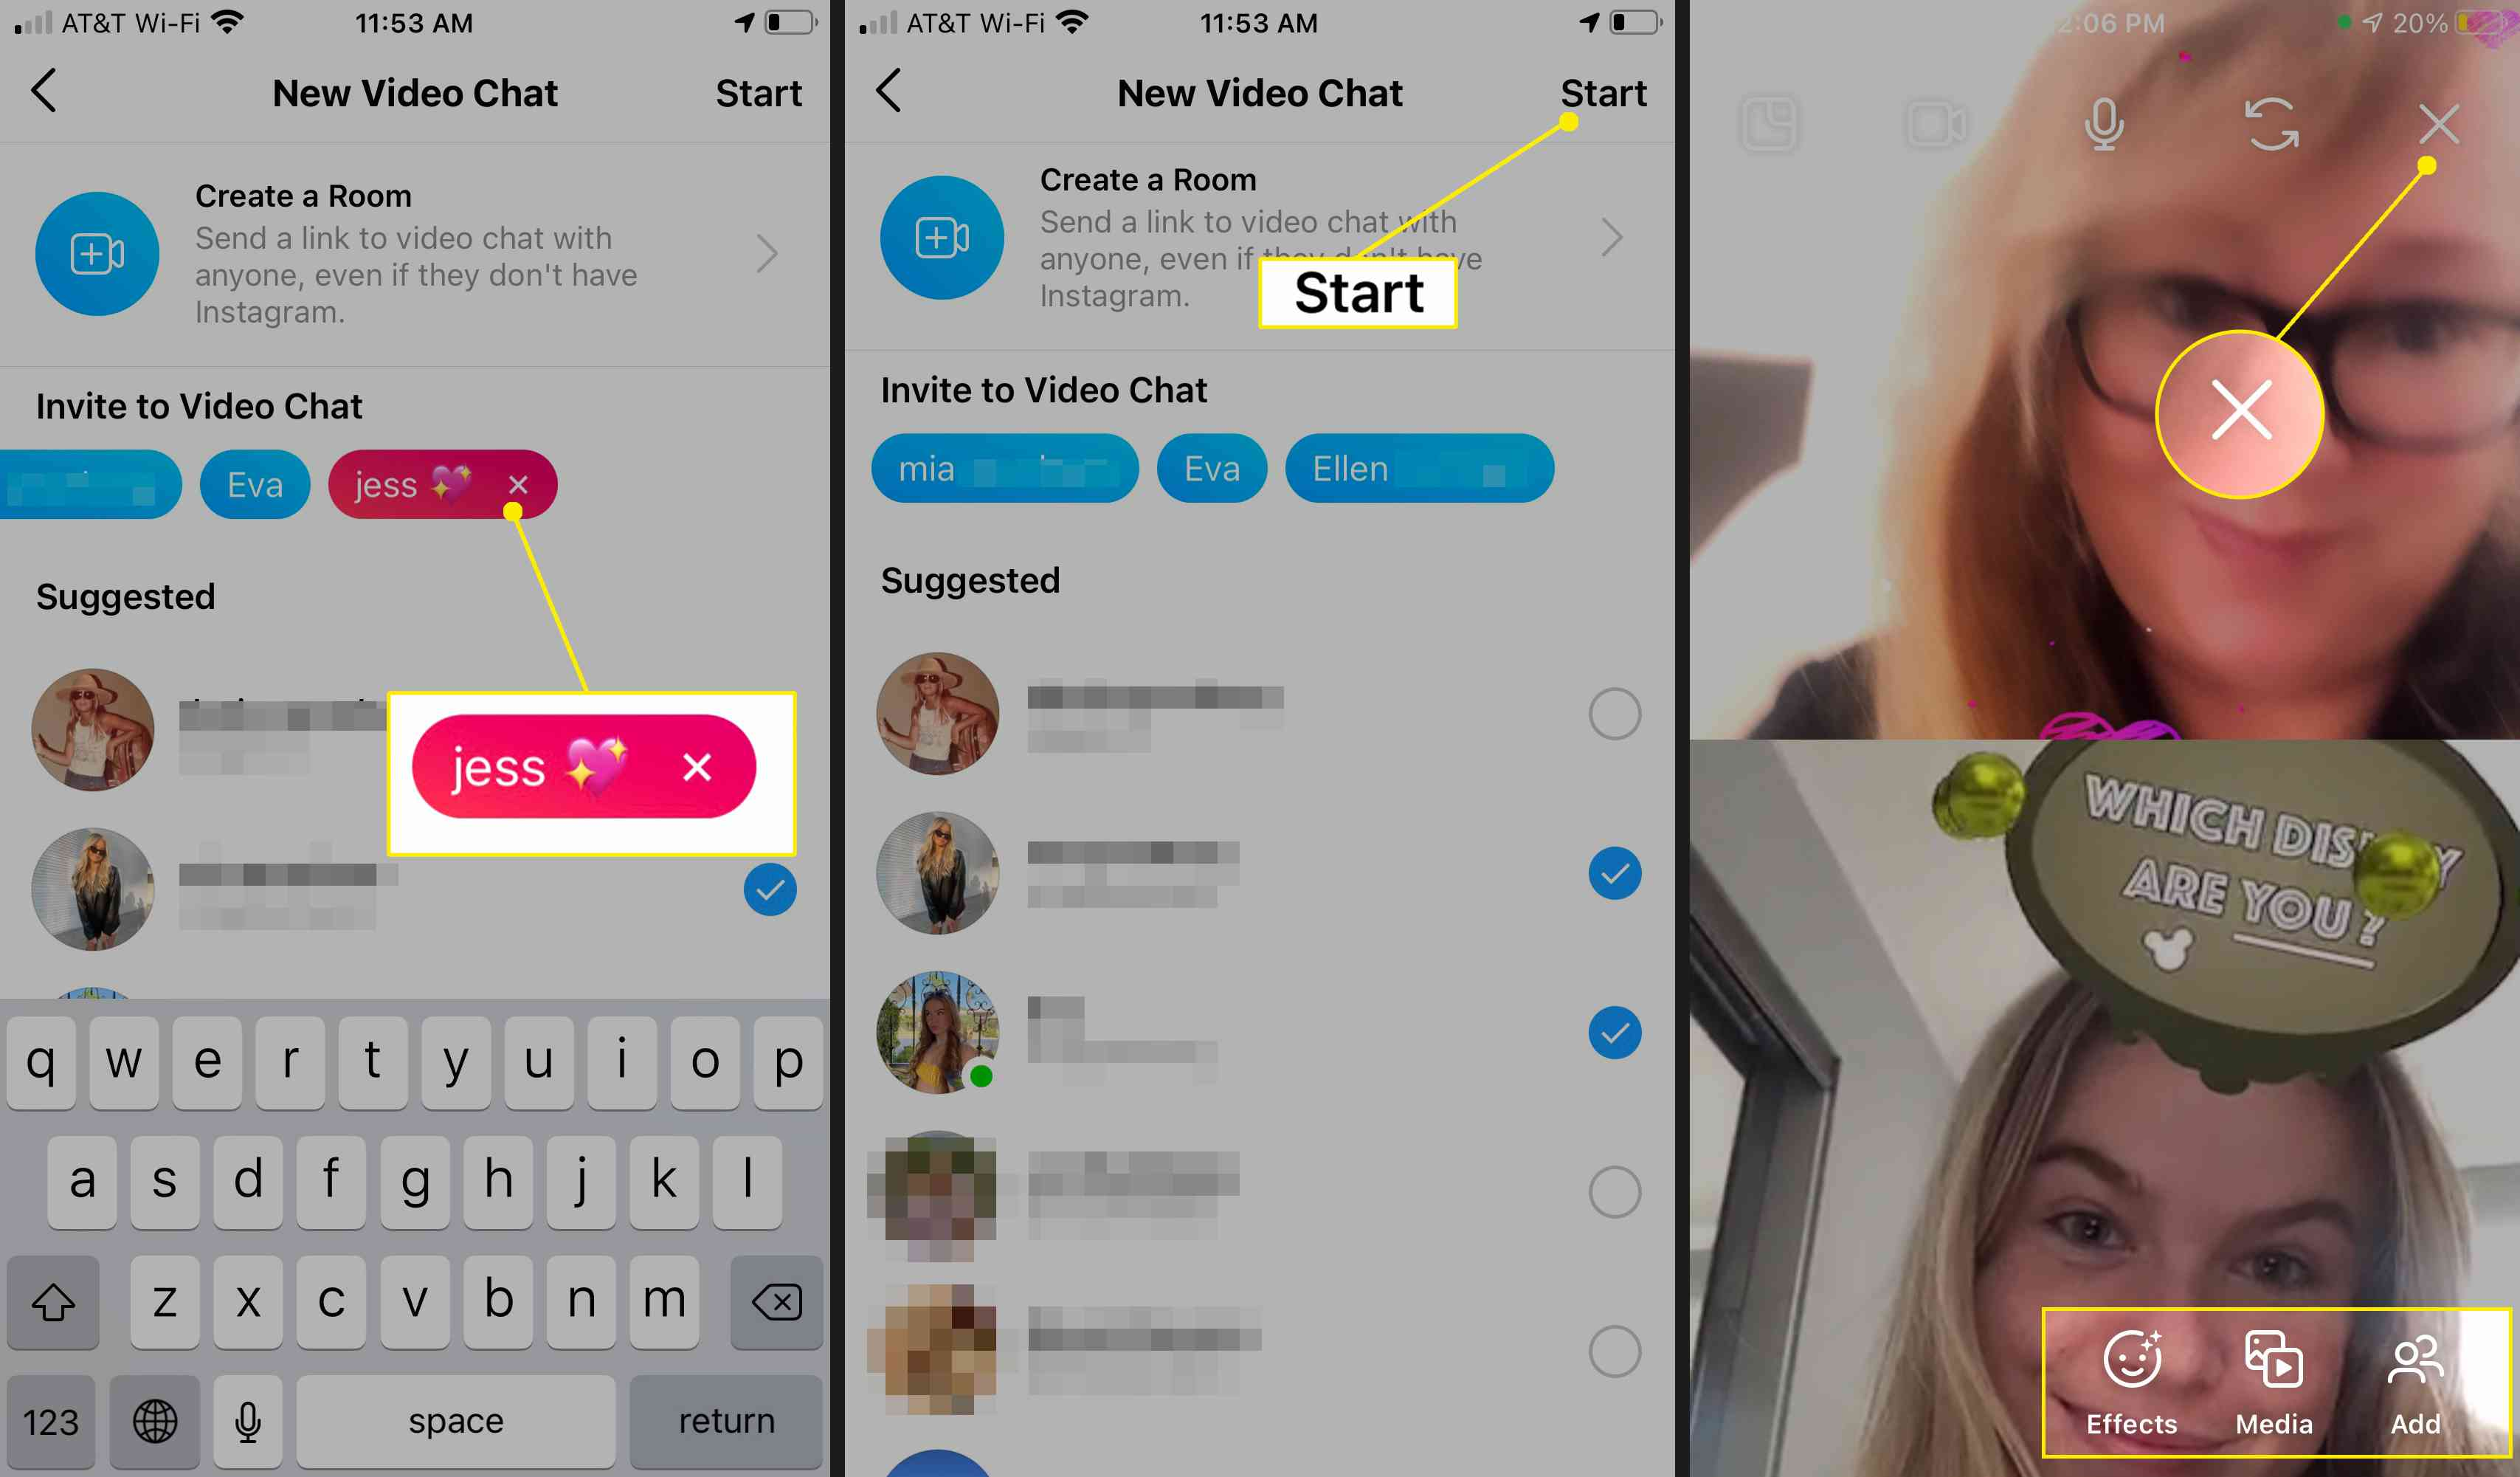 Remove participants, then start and end an Instagram video chat